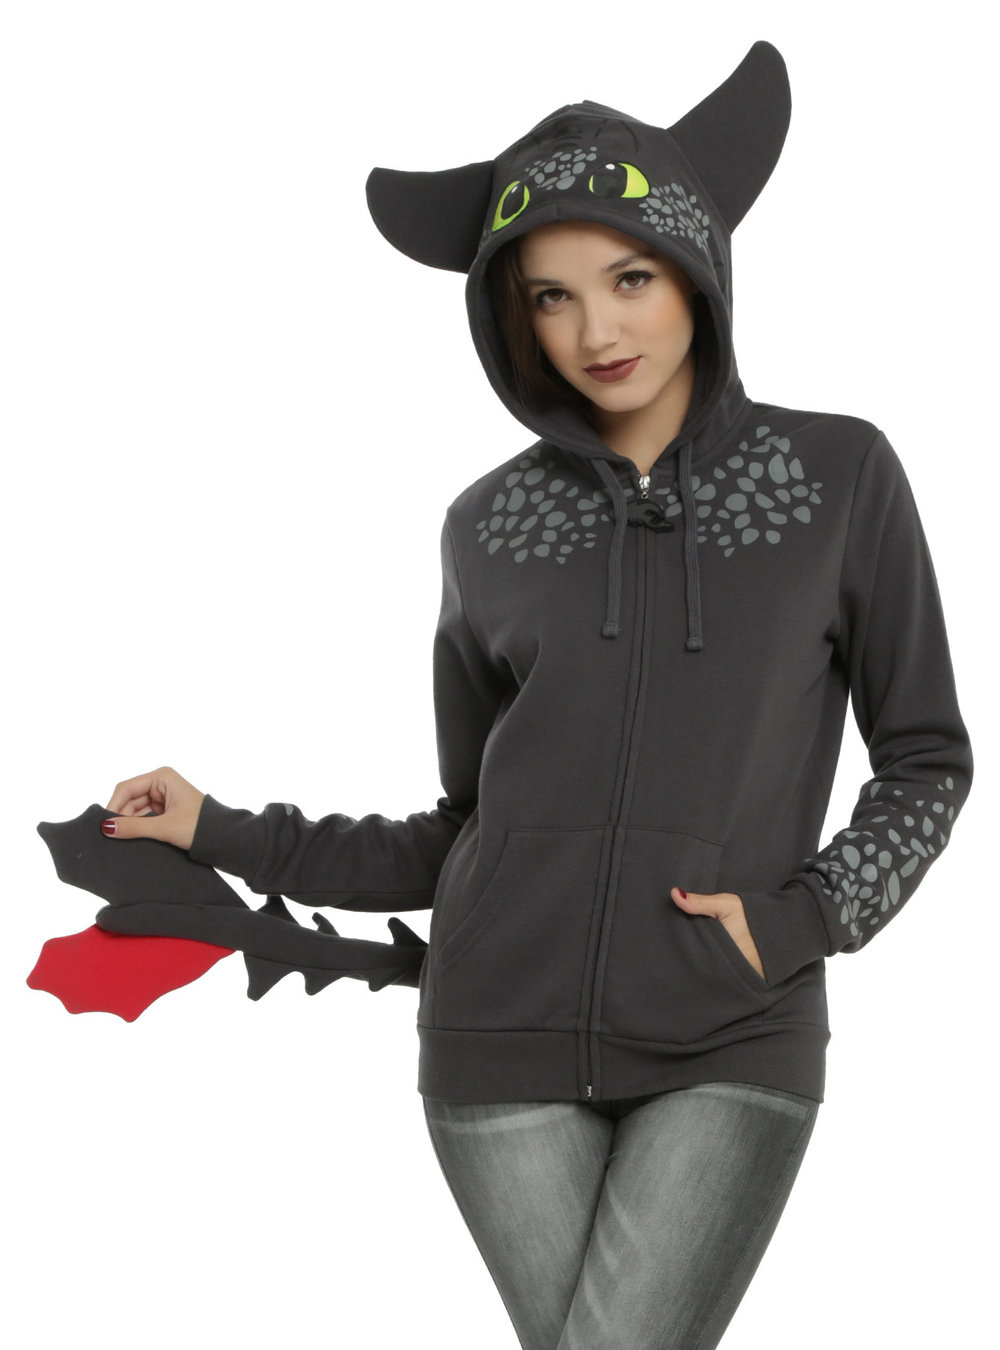 Embrace your inner dragon with this how to train your dragon embrace your inner dragon with this how to train your dragon inspired hoodie ccuart Image collections